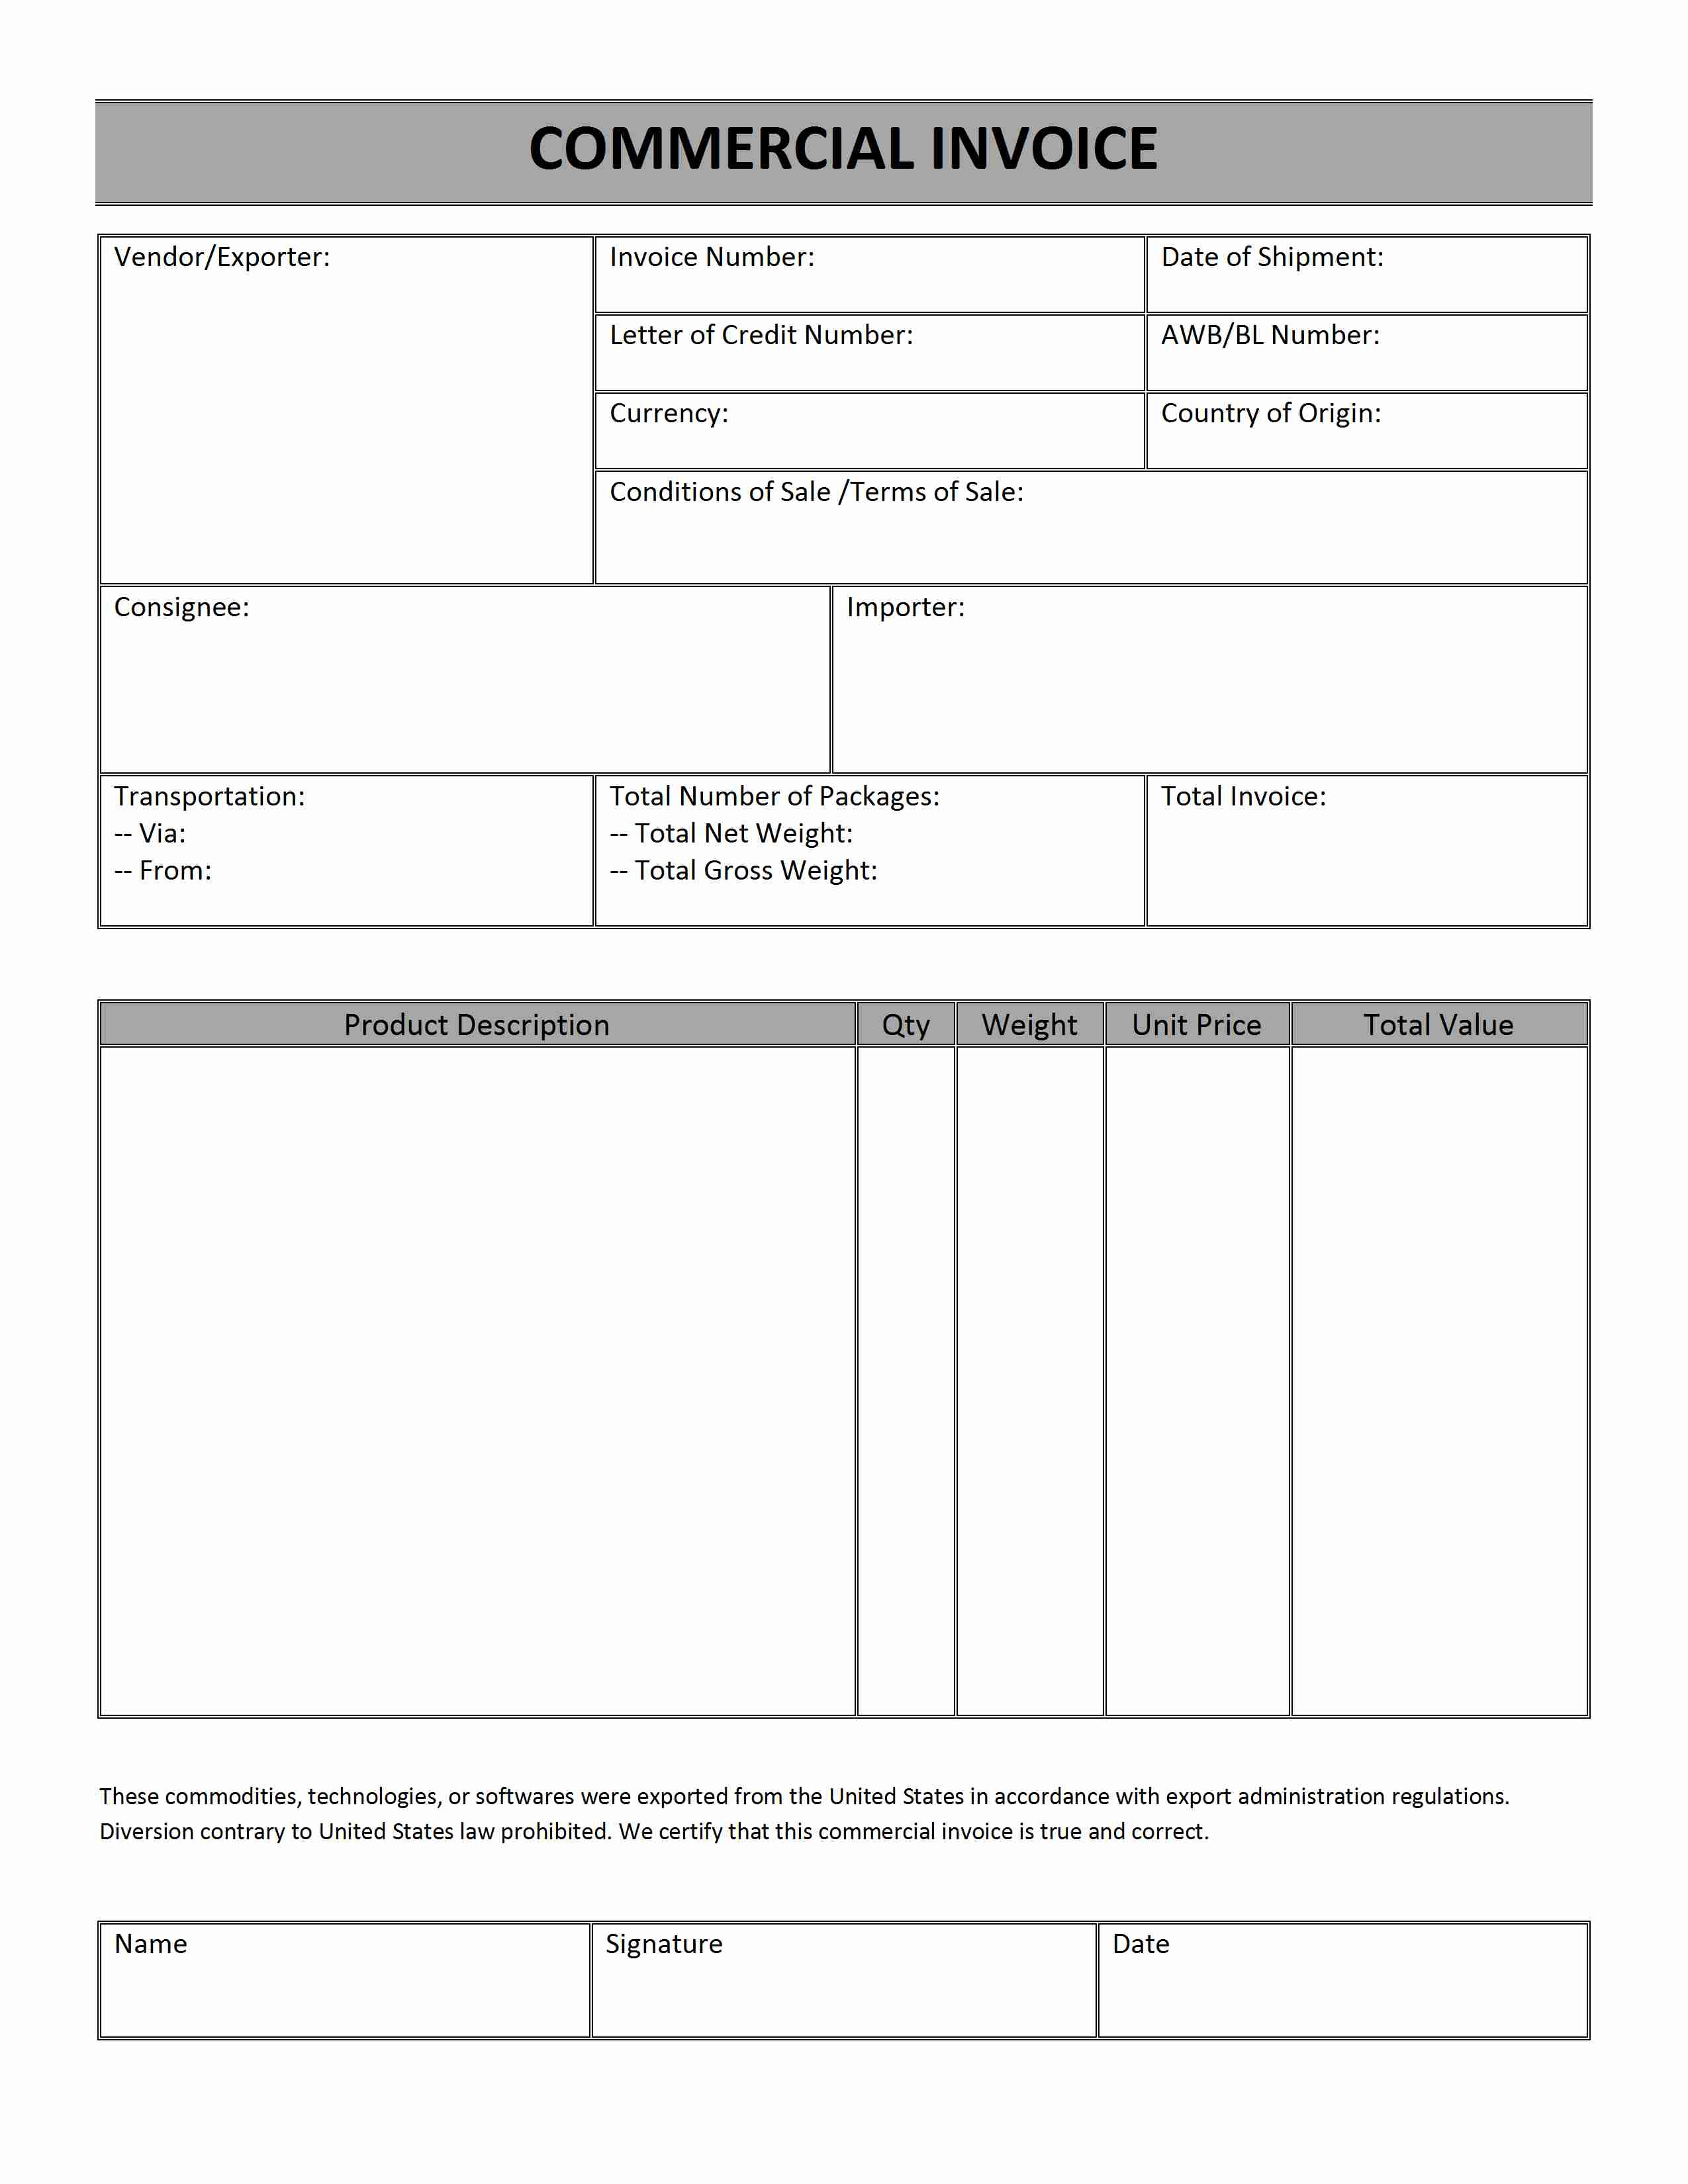 Darkfaderus  Ravishing Printable Sales Invoice Simple Invoice Form Free Invoice  With Fair Printable Receipt Free  Free Printable Raffle Tickets  Receipt   Printable With Nice Best App For Invoices Also Aia Invoicing In Addition Fee Invoice And Invoice Price Meaning As Well As Numbering Invoices Additionally Legal Invoice Template Word From Happytomco With Darkfaderus  Fair Printable Sales Invoice Simple Invoice Form Free Invoice  With Nice Printable Receipt Free  Free Printable Raffle Tickets  Receipt   Printable And Ravishing Best App For Invoices Also Aia Invoicing In Addition Fee Invoice From Happytomco